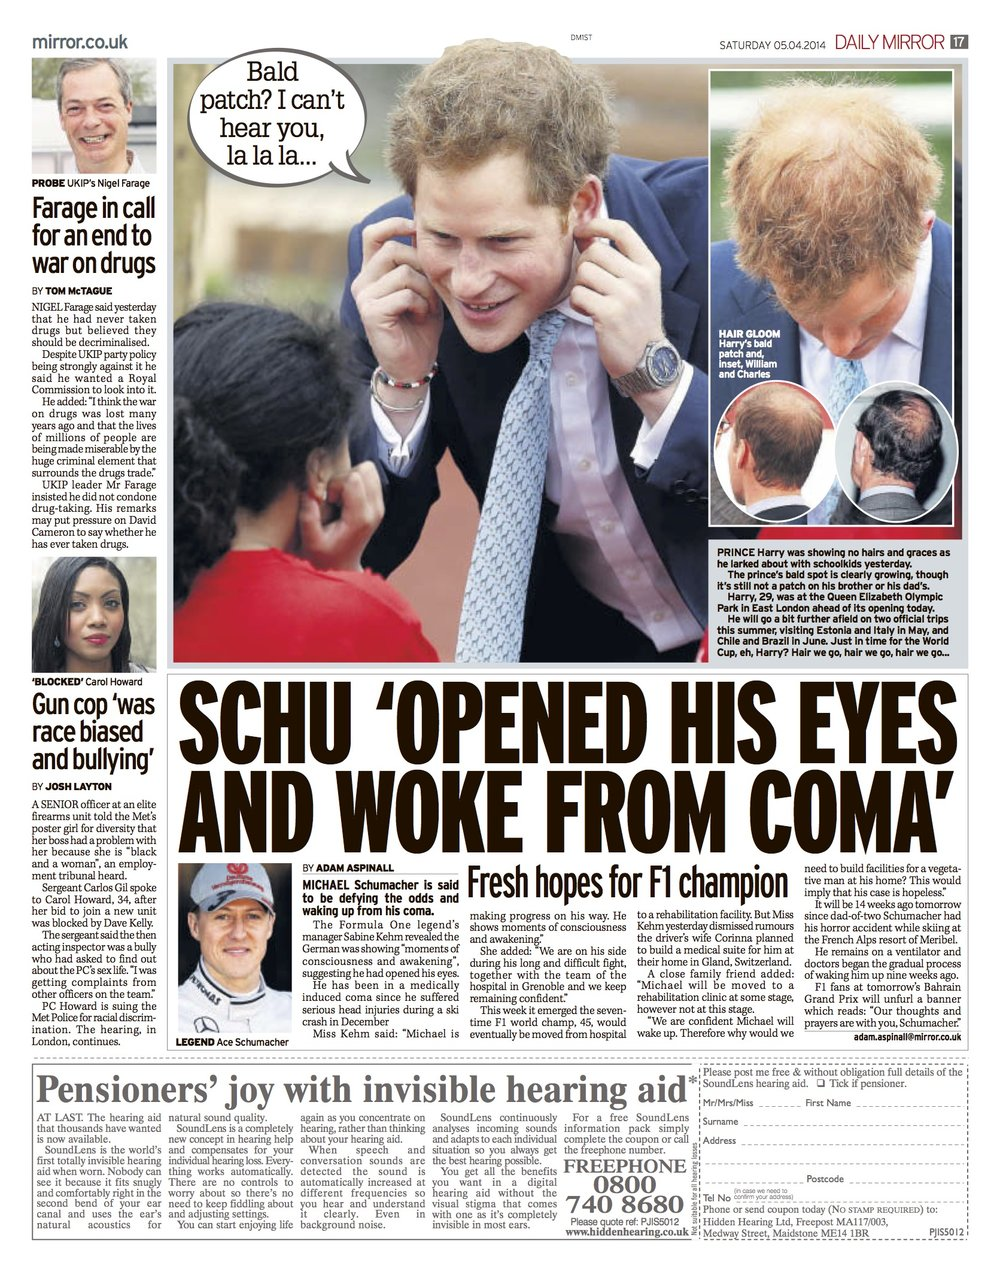 Prince Harry Daily Mirror.jpg